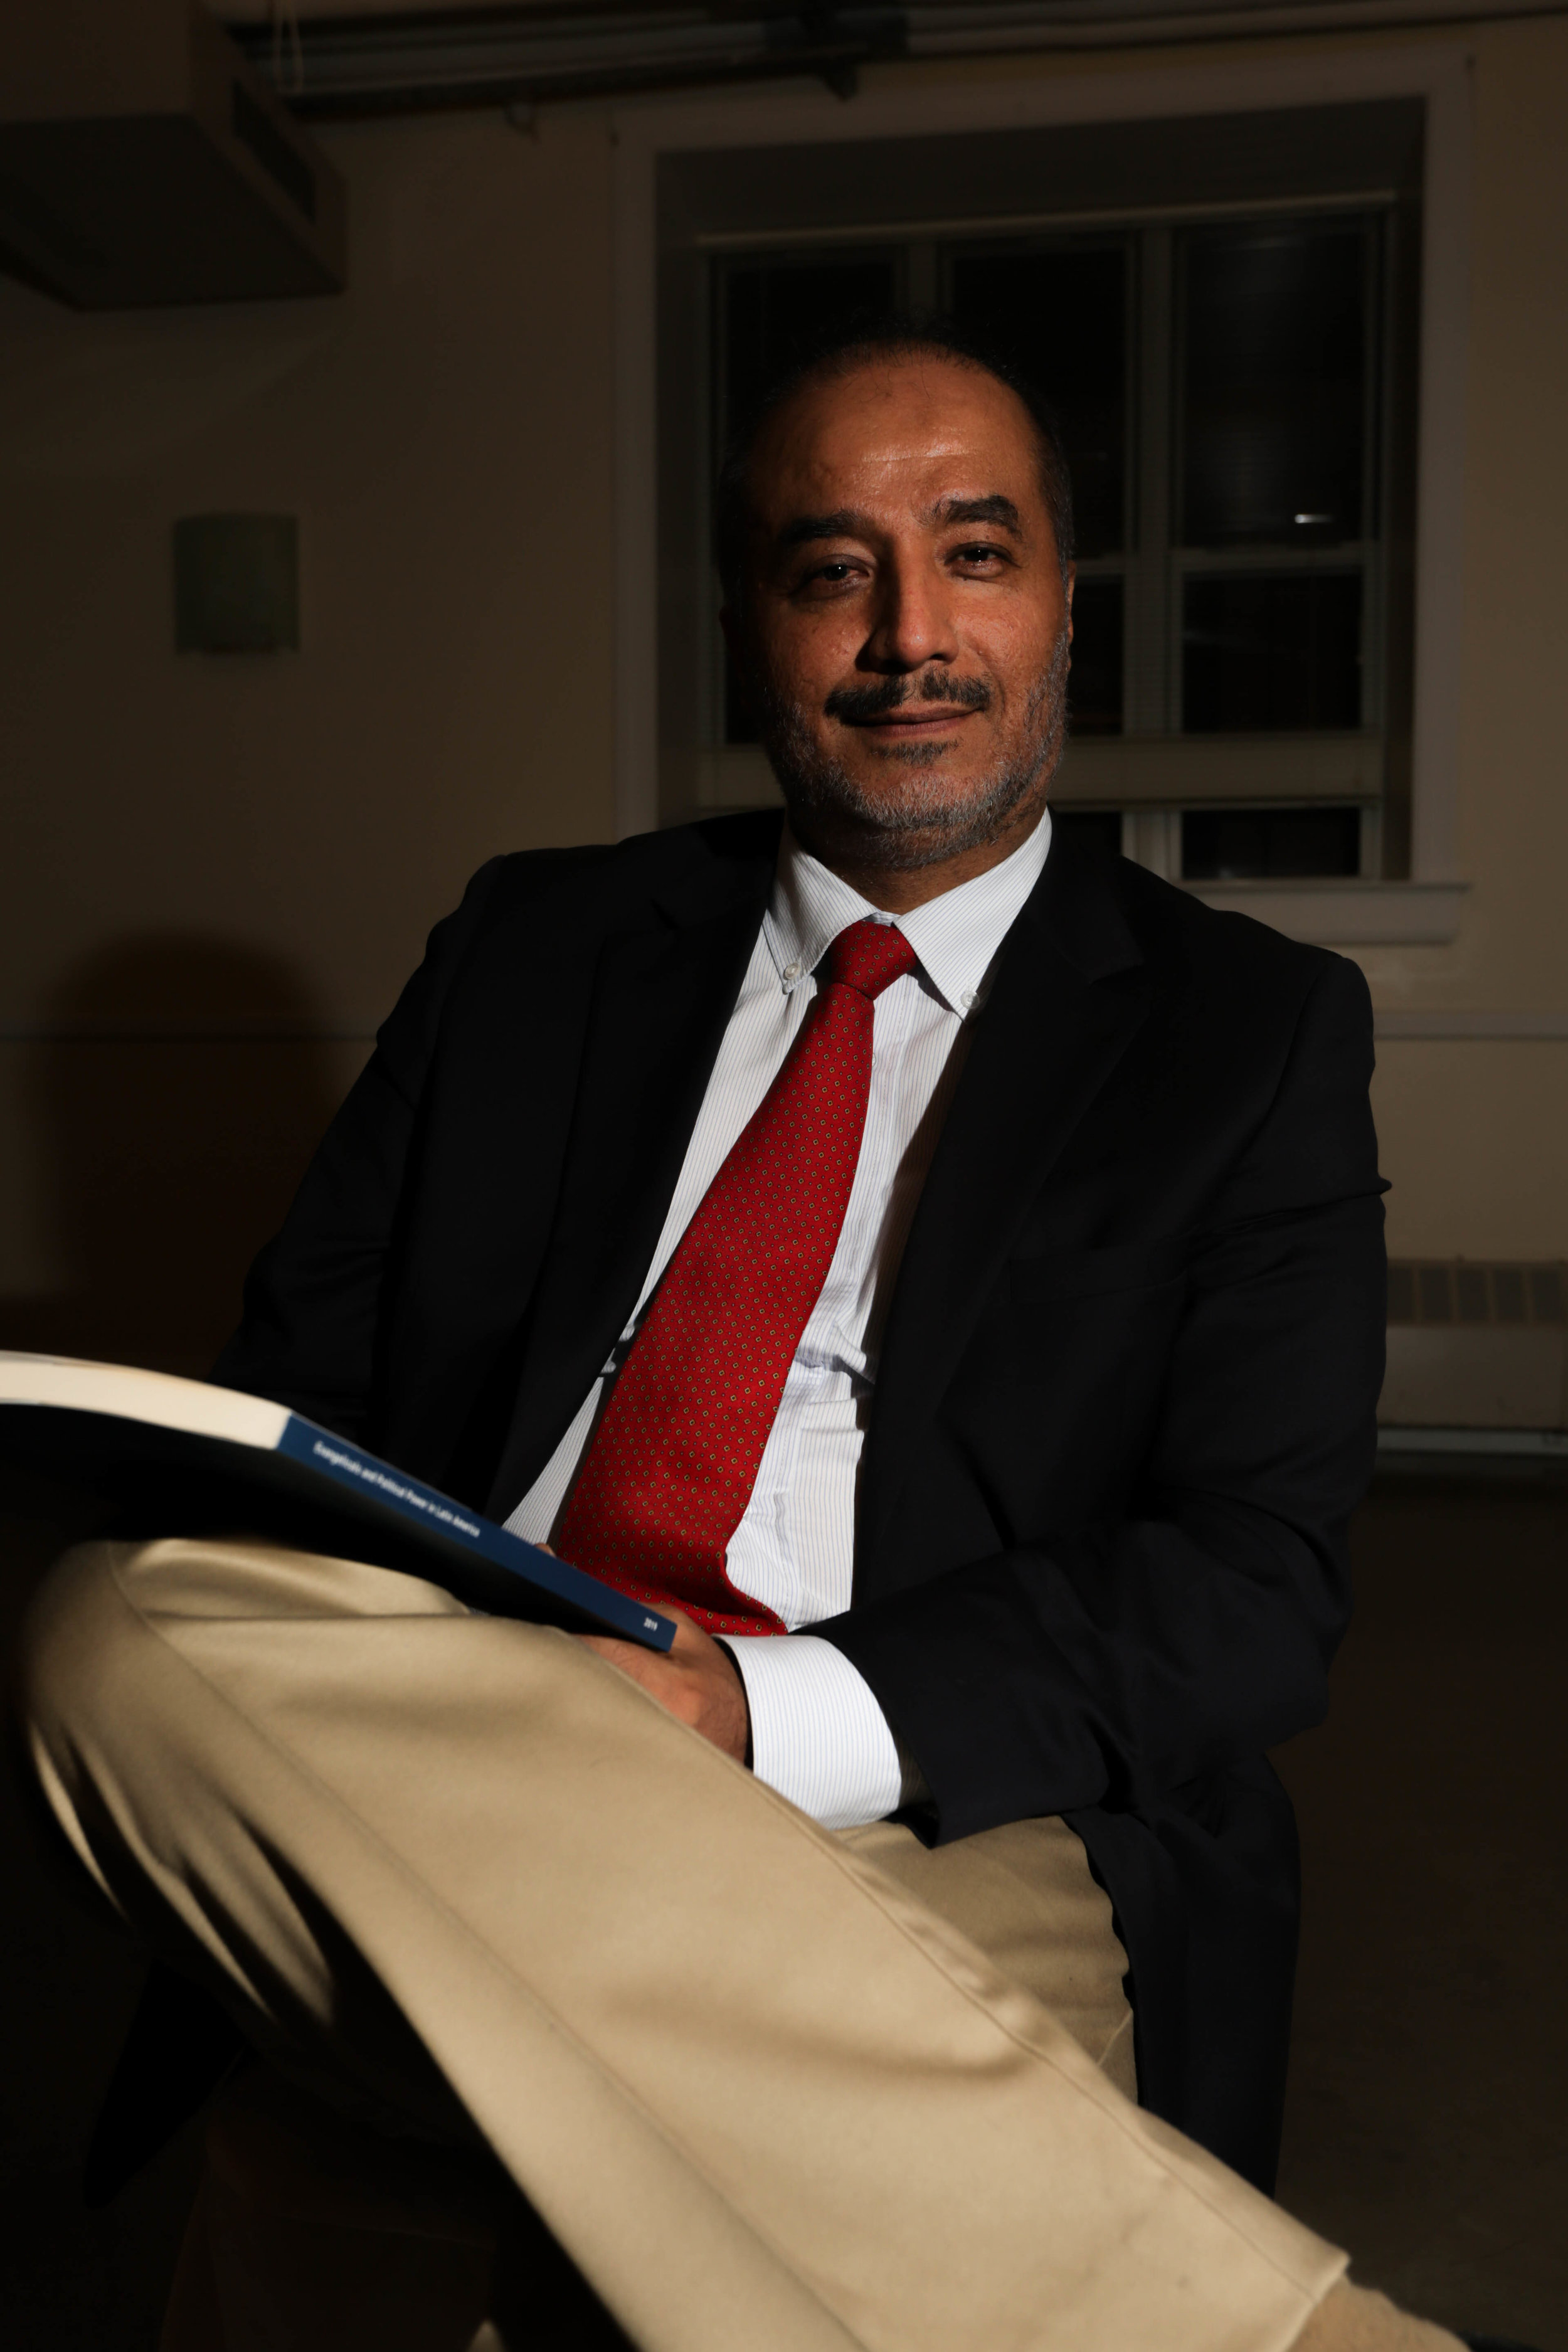 Peruvian sociologist Dr. Jose Luiz Guadalupe. Photo by Wes Parnell.